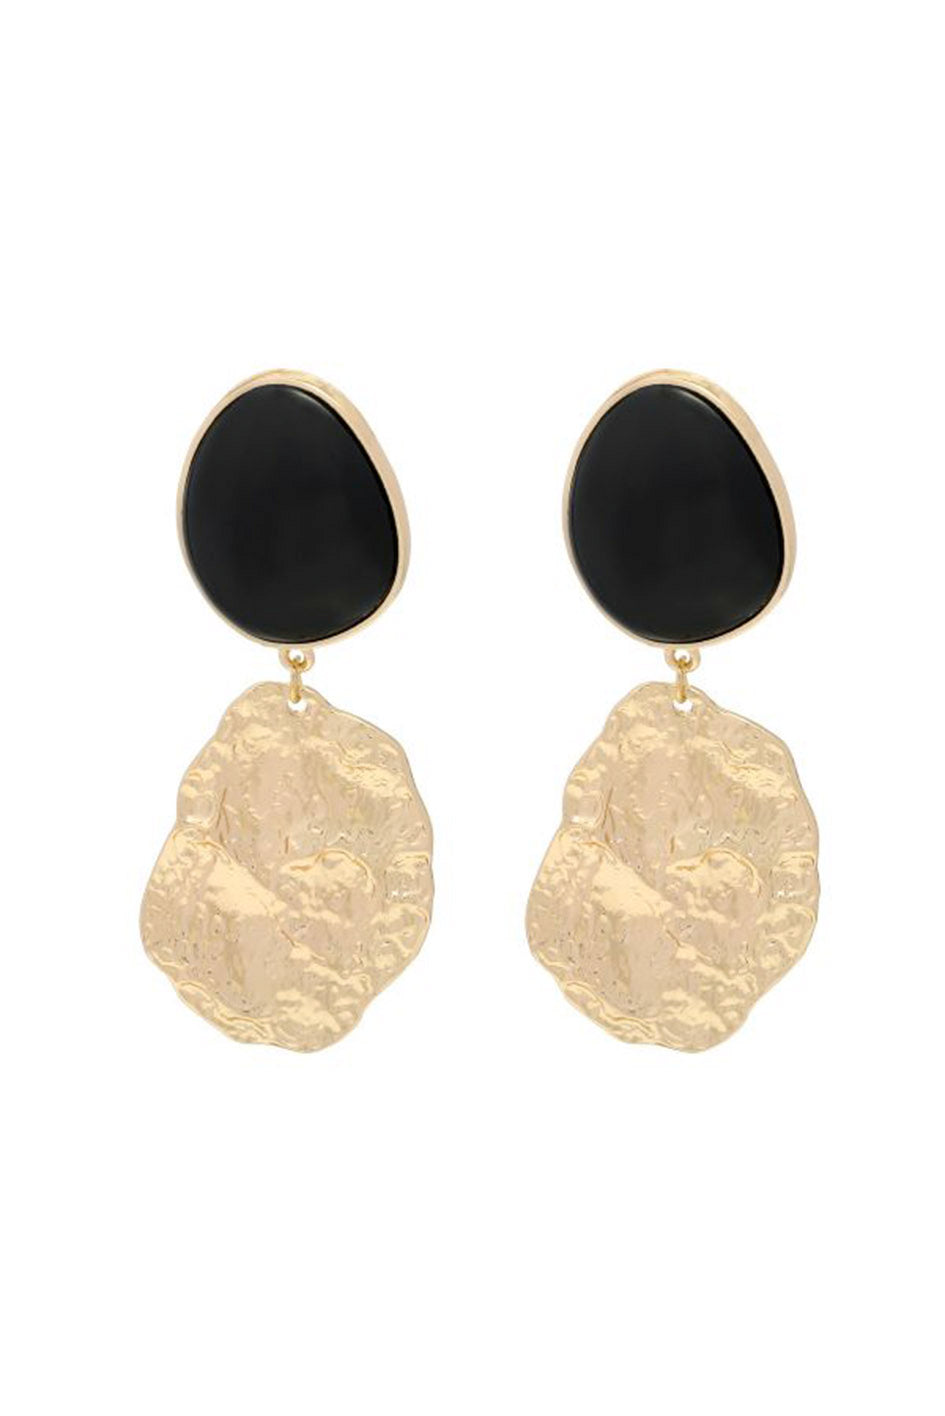 Summer's Statement Earrings